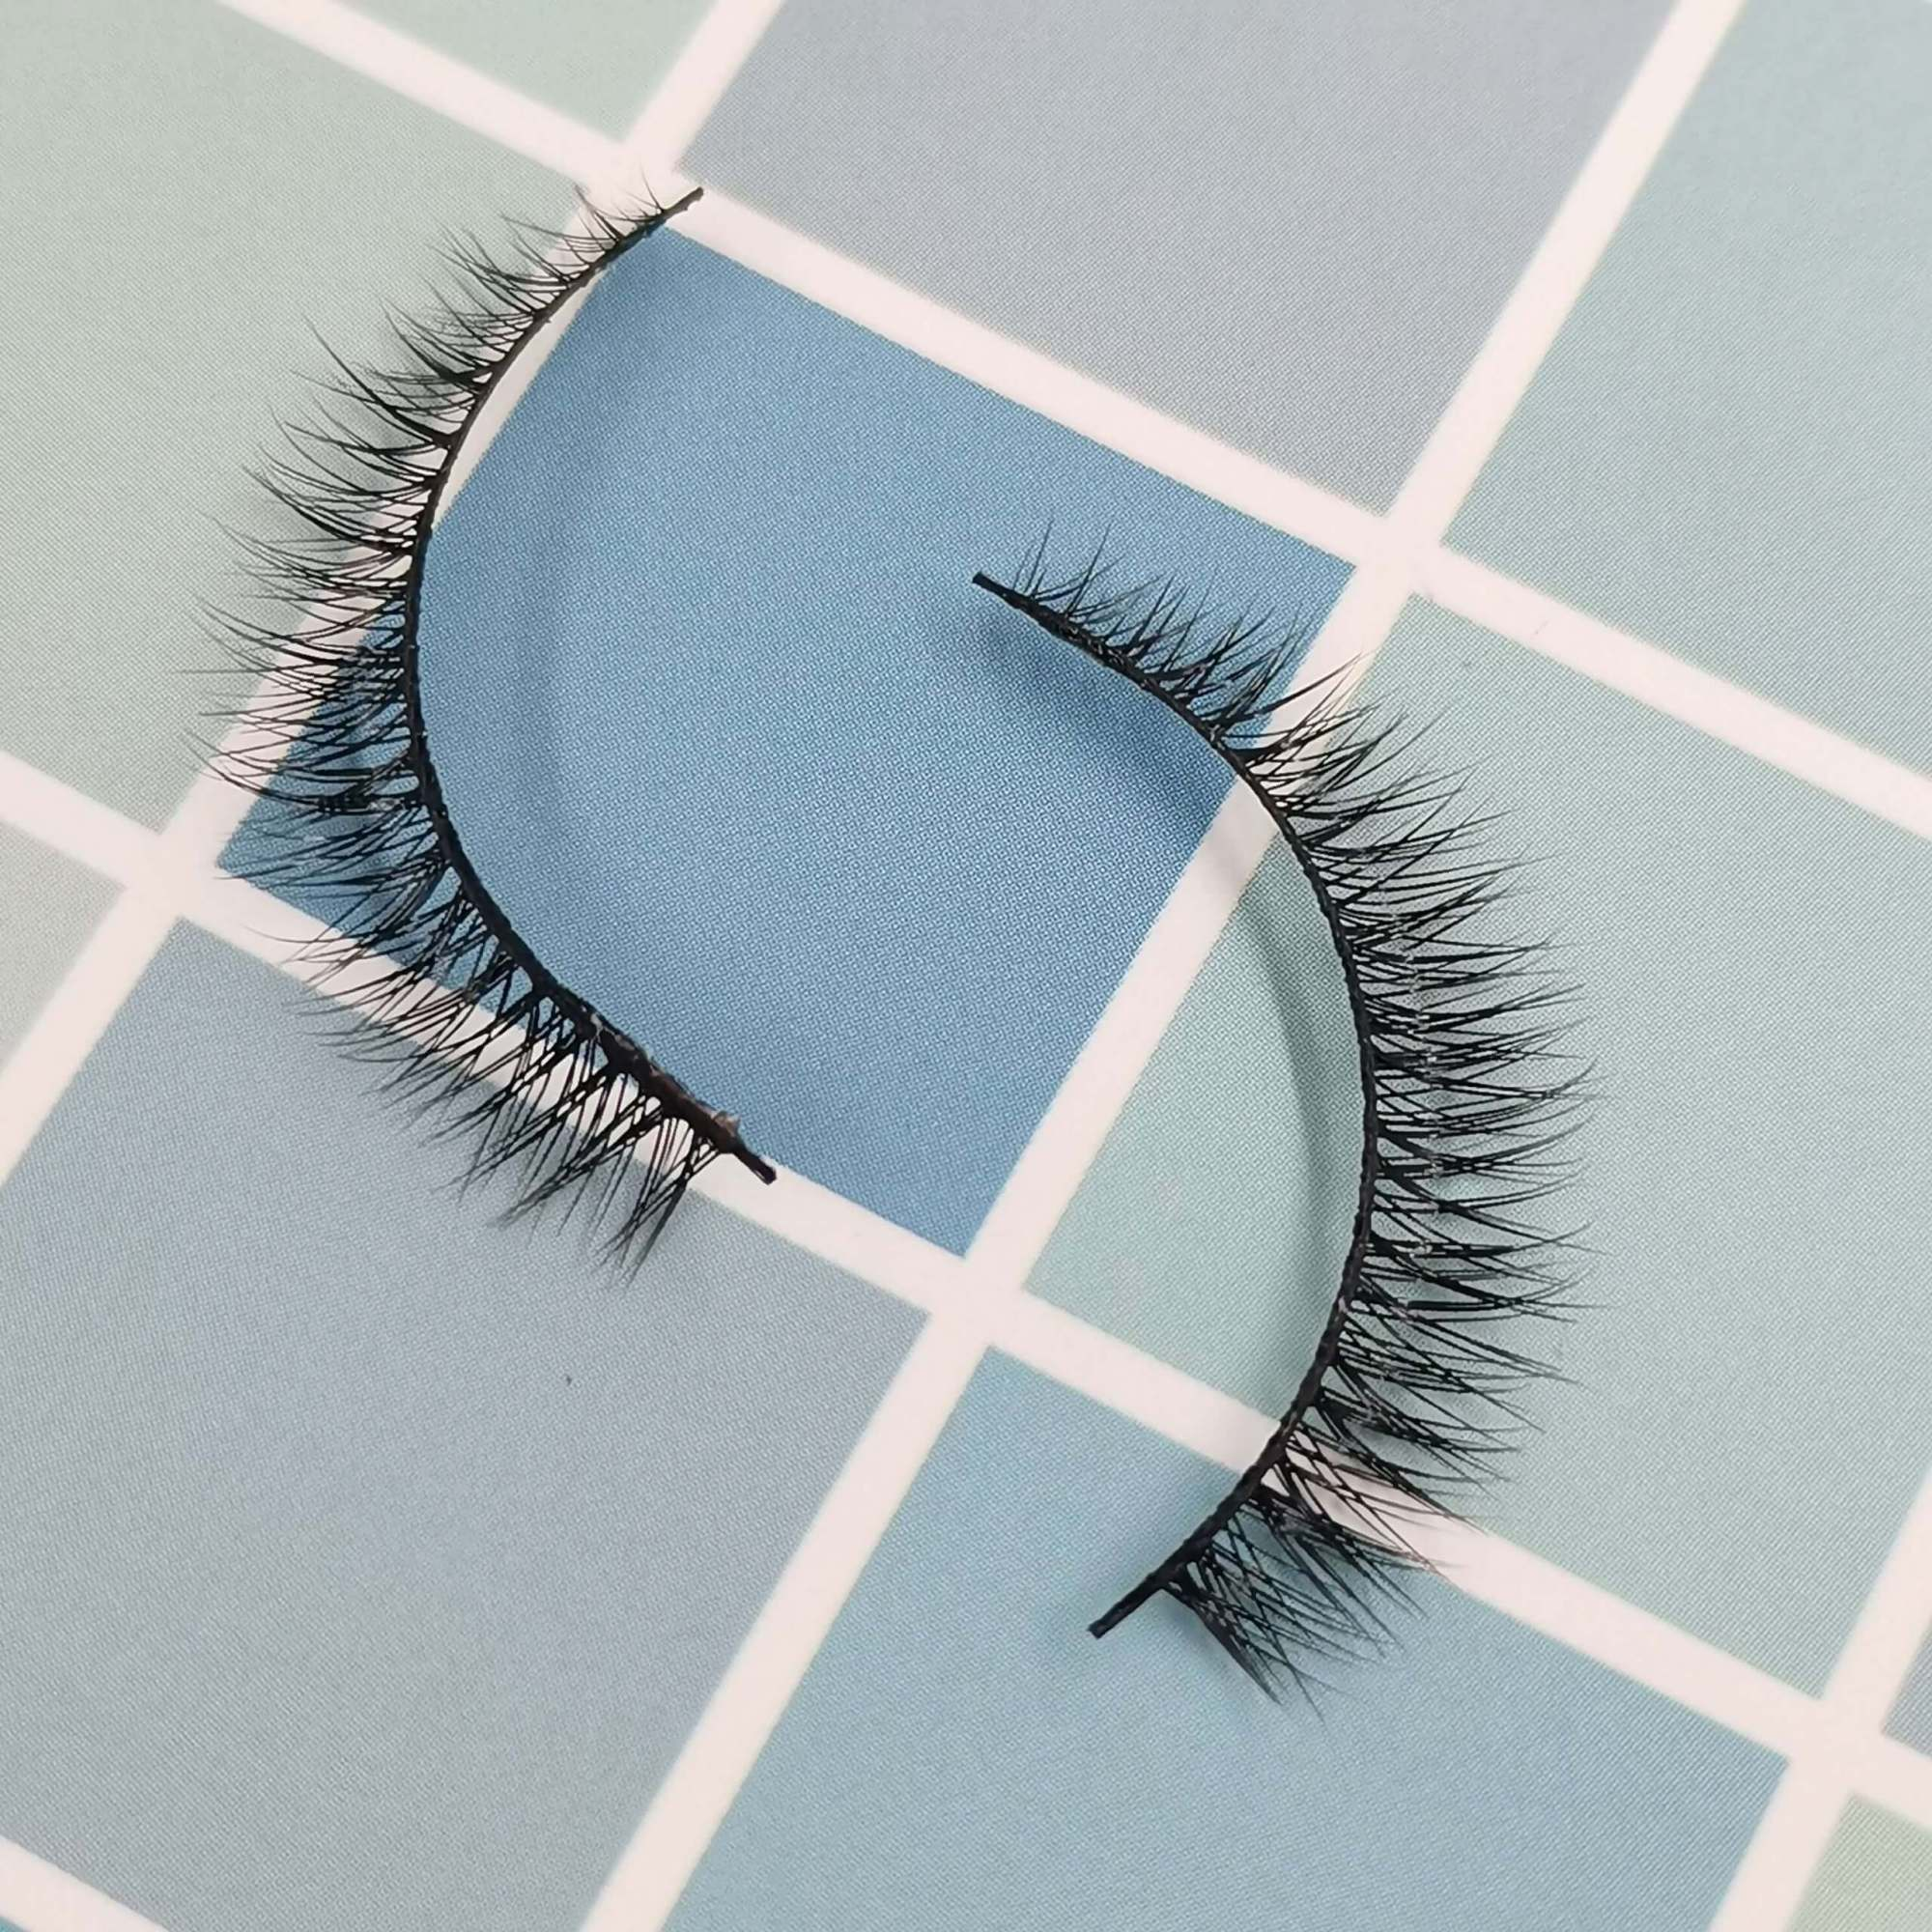 A pair of bottom eyelashes for your eye shape and its model is x001. Trust me, ProluxuryLashes brand is the best eyelash supplier